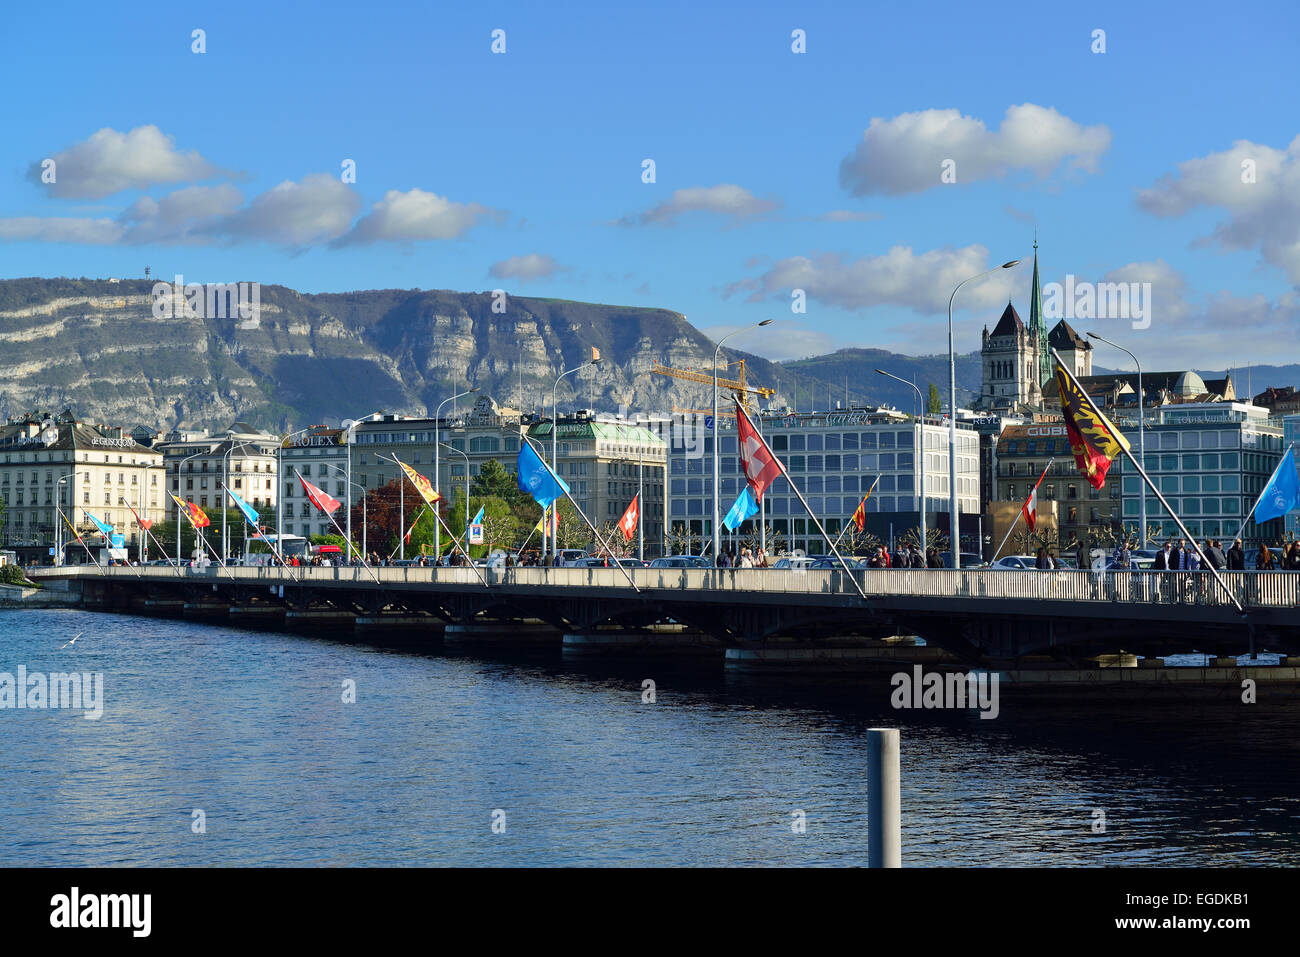 Mont Blanc bridge and cathedral, lake Geneva, Geneva, Switzerland - Stock Image